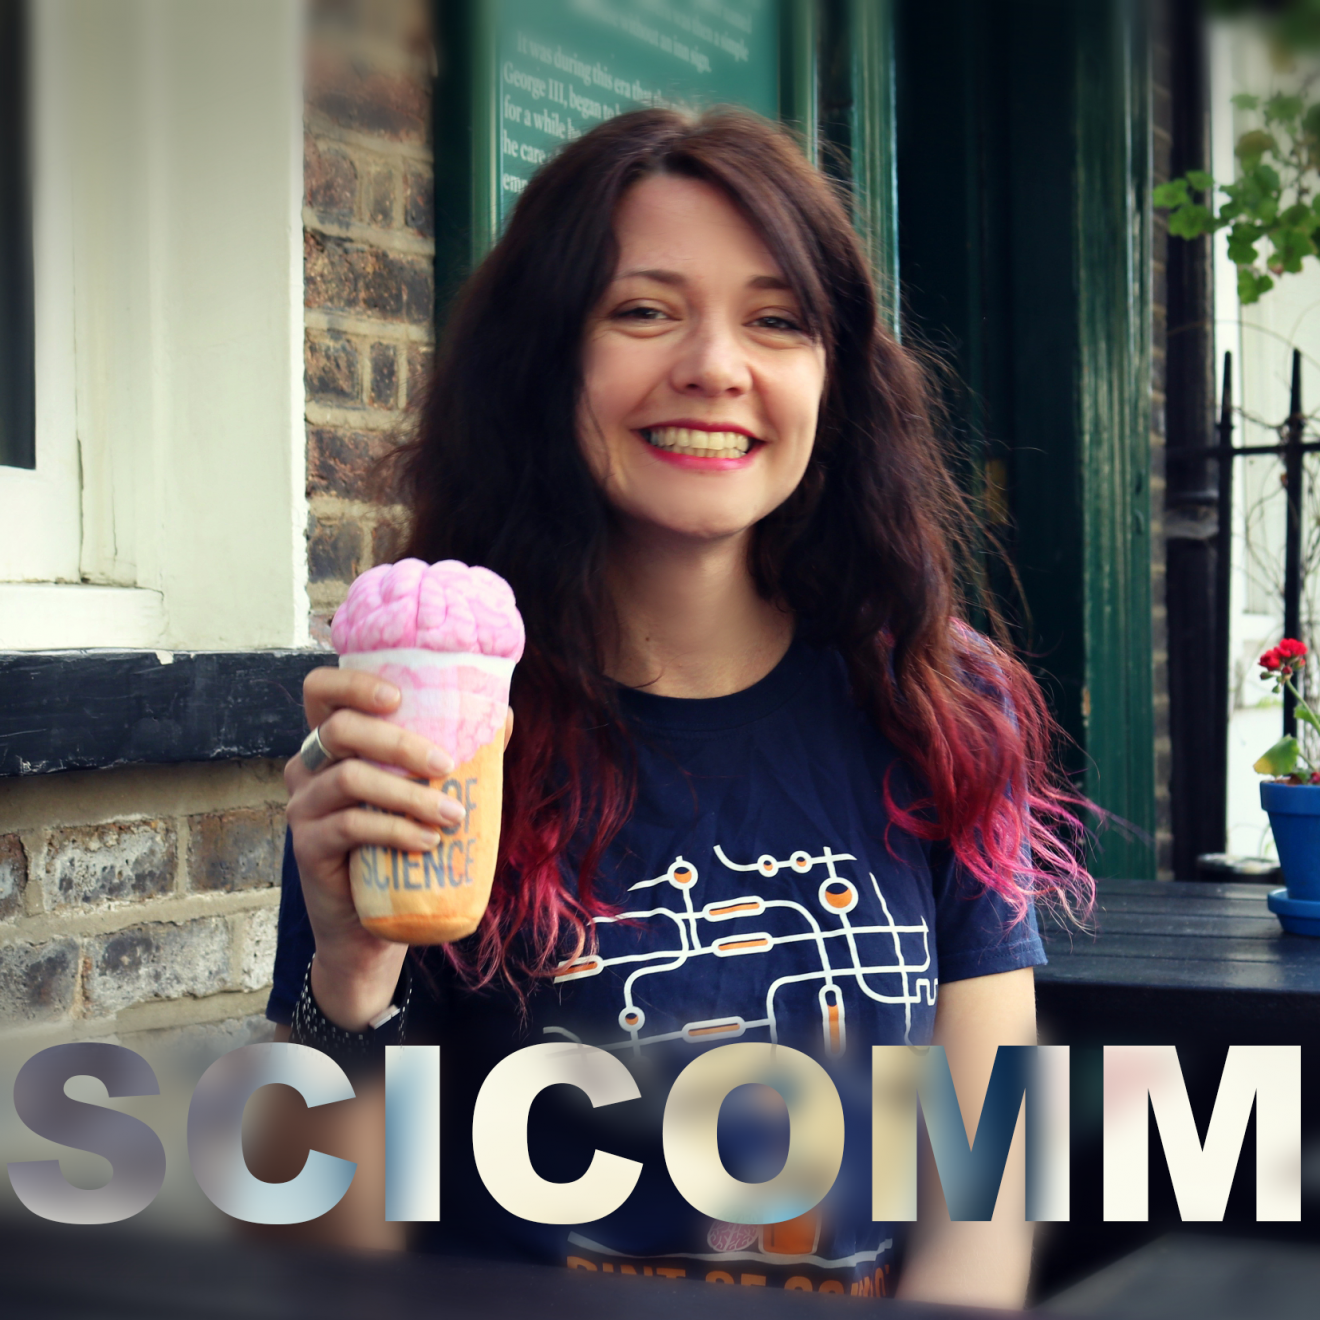 25 SciComm: Pint of Science - with Elodie Chabrol